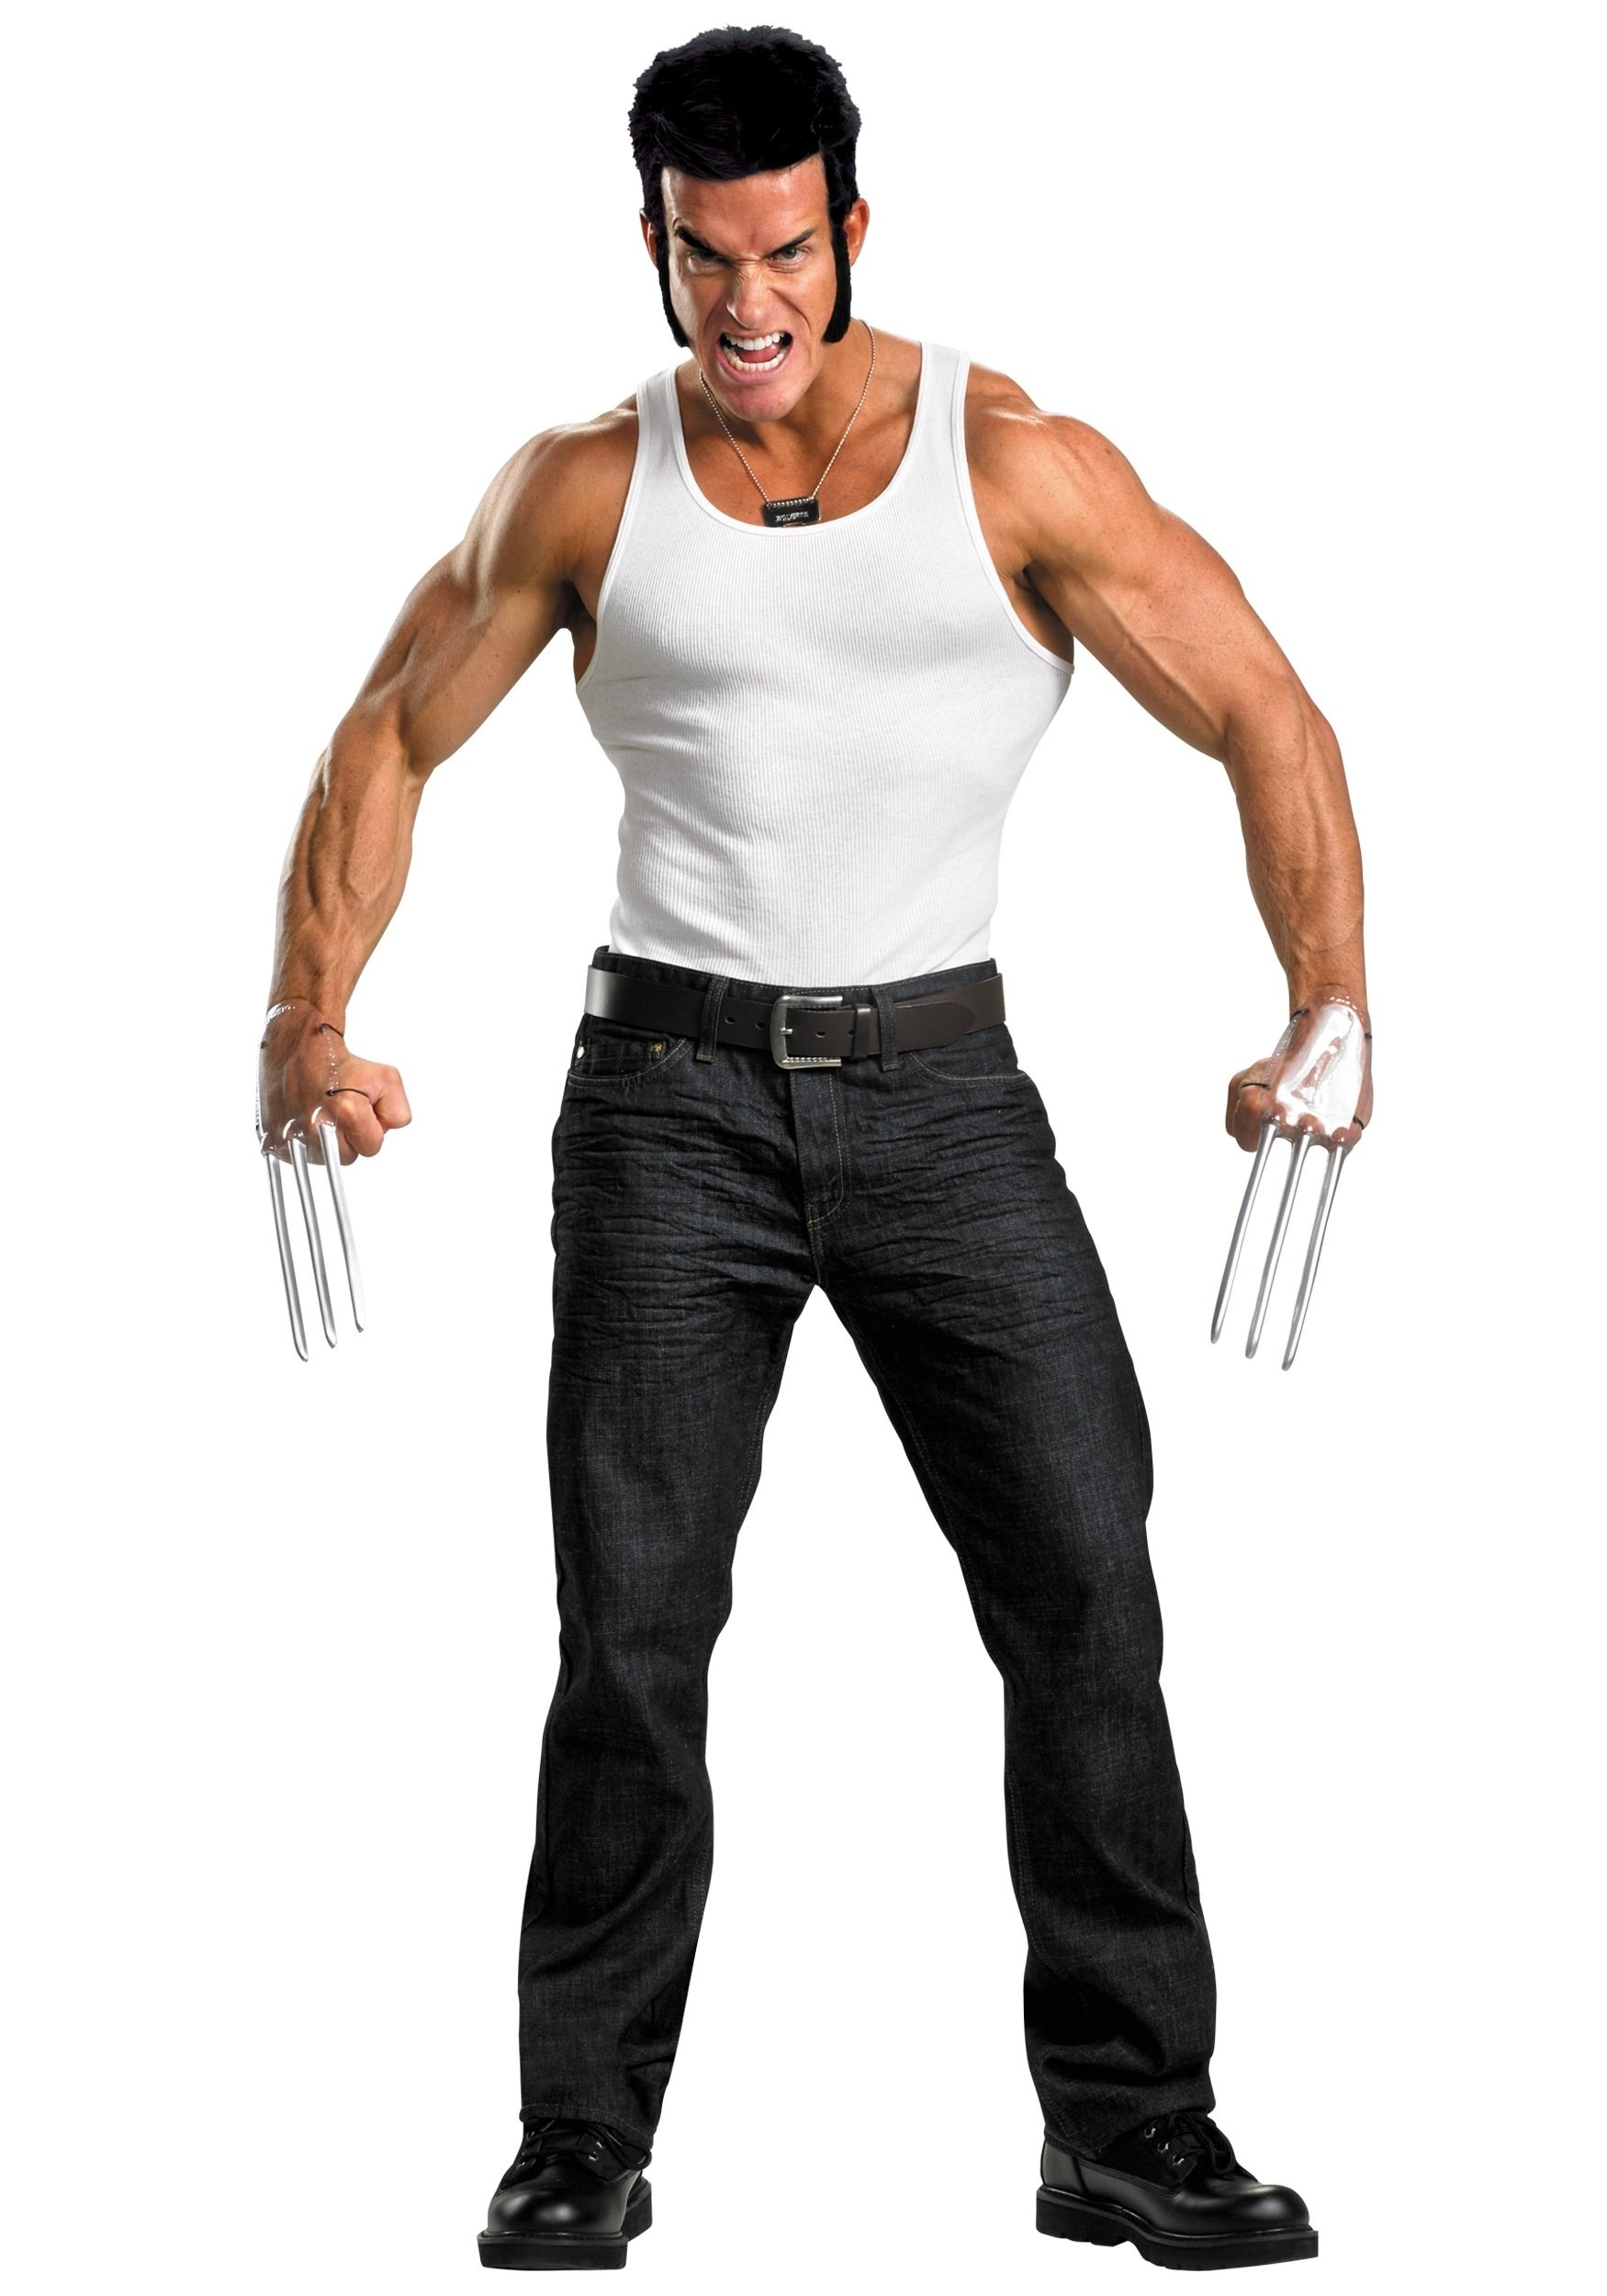 10 Stunning Cool Costume Ideas For Men wolverine accessory kit halloween costume ideas 2016 halloween 17 2020